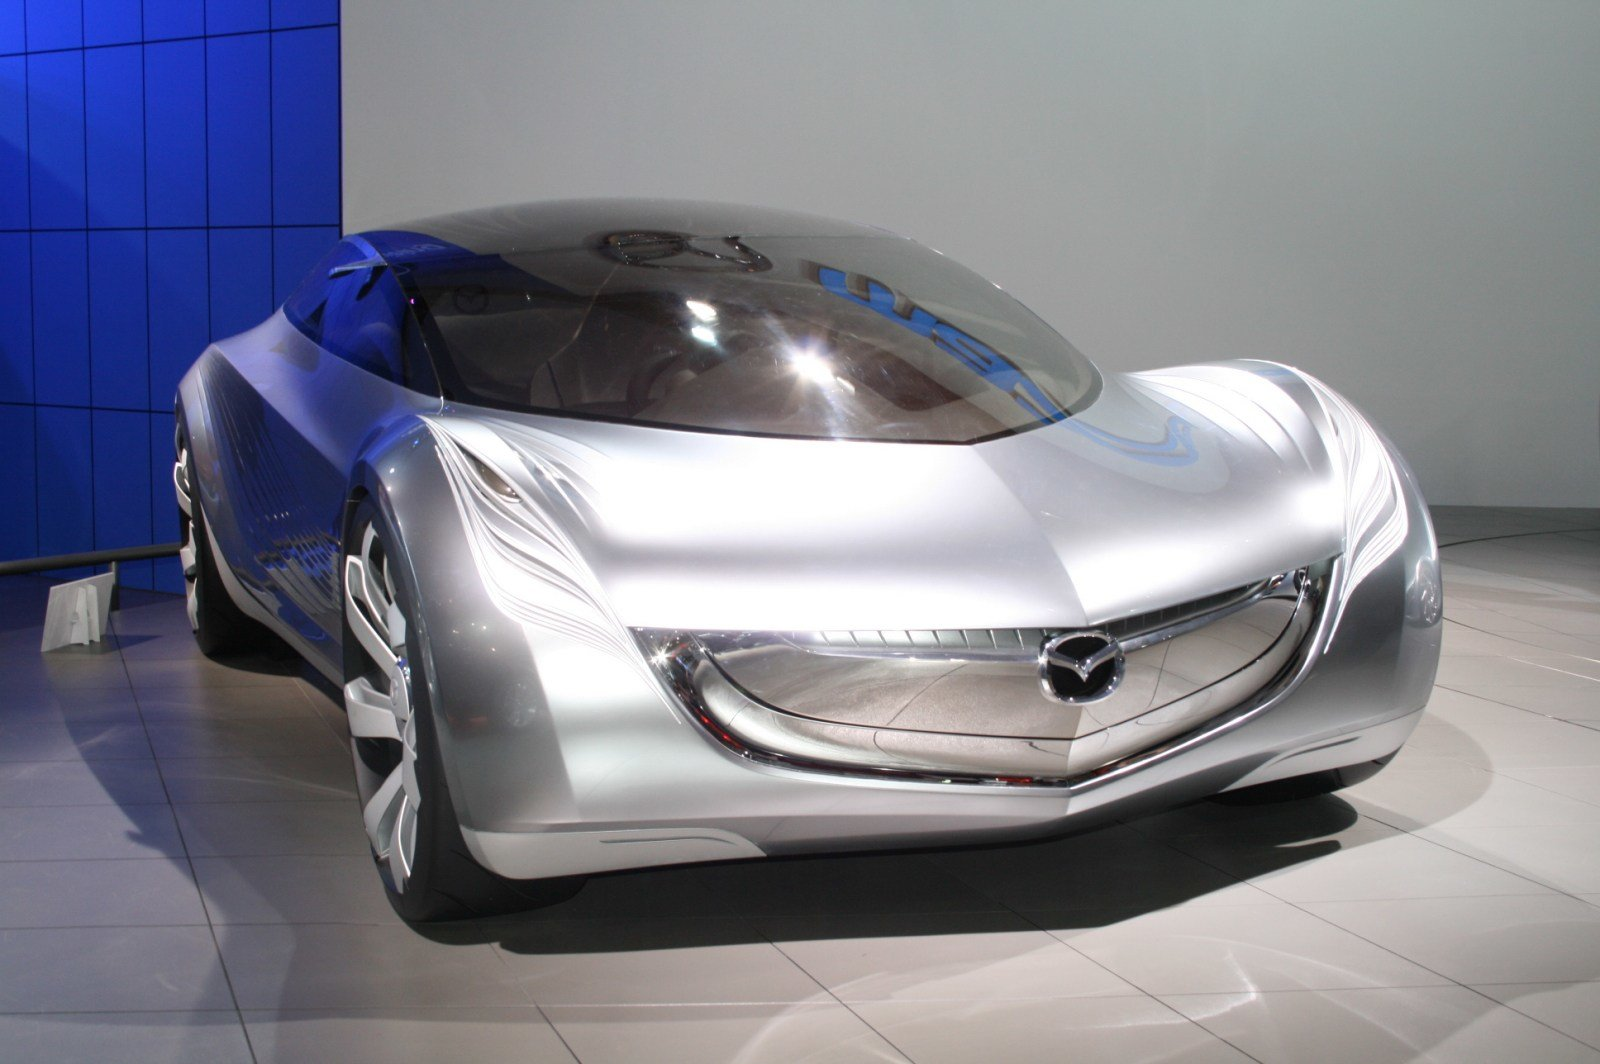 Latest Mazda Nagare Luxury Car Gallery Top Luxury Cars Free Download